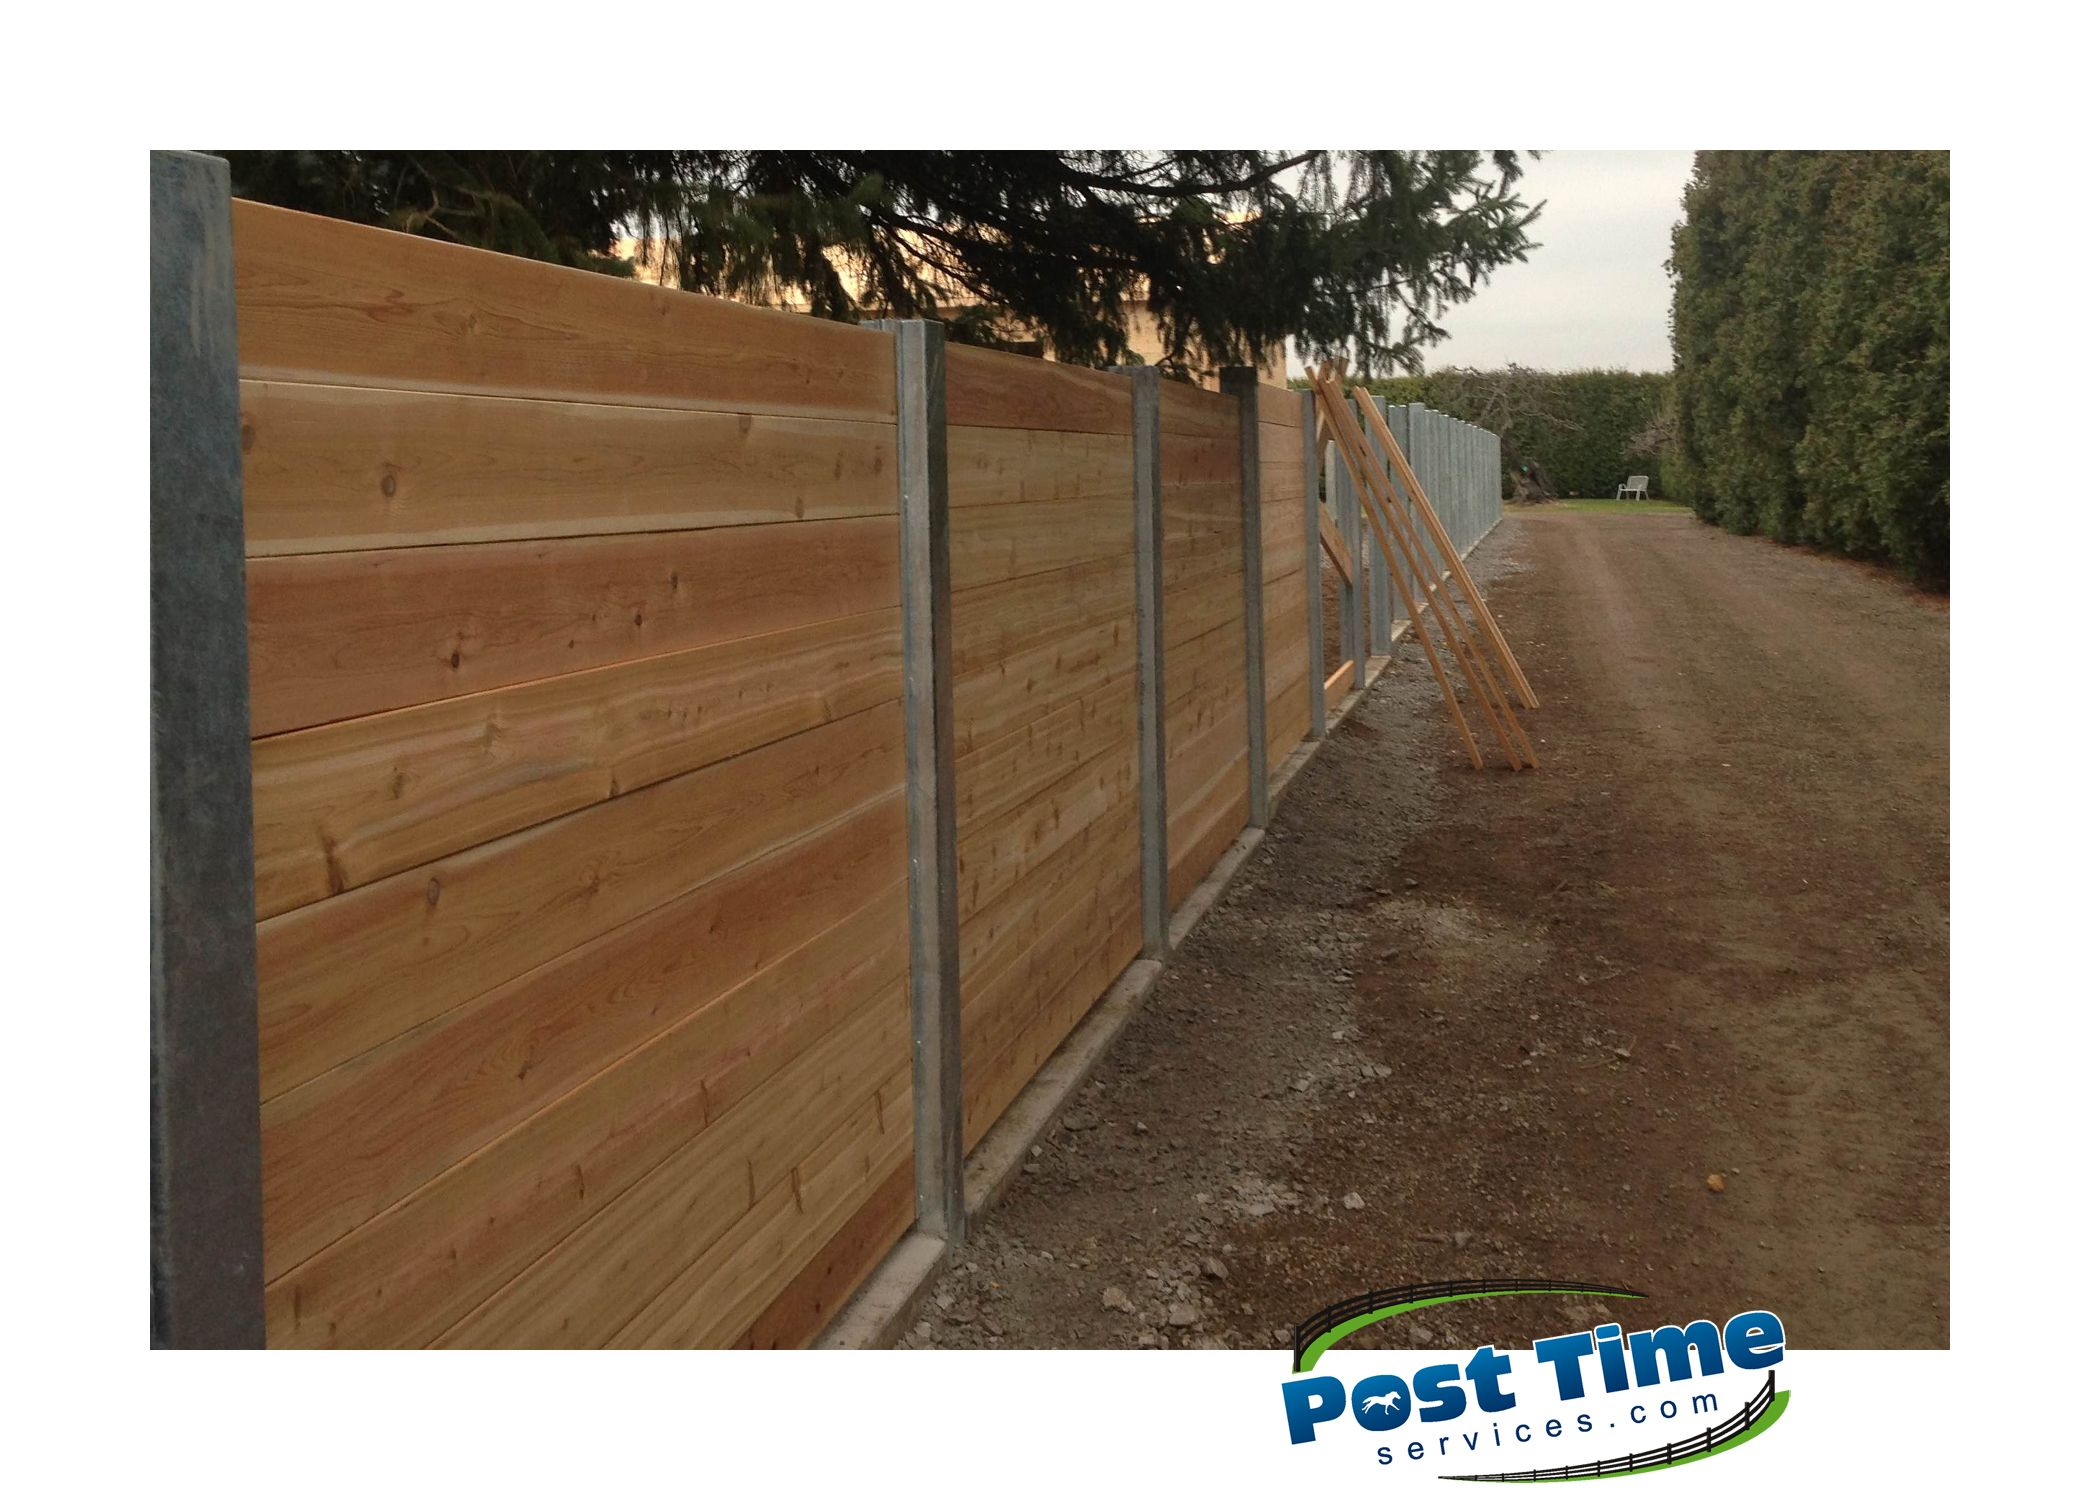 Fort Knox Cedar Privacy Fence installed Horizontally in between